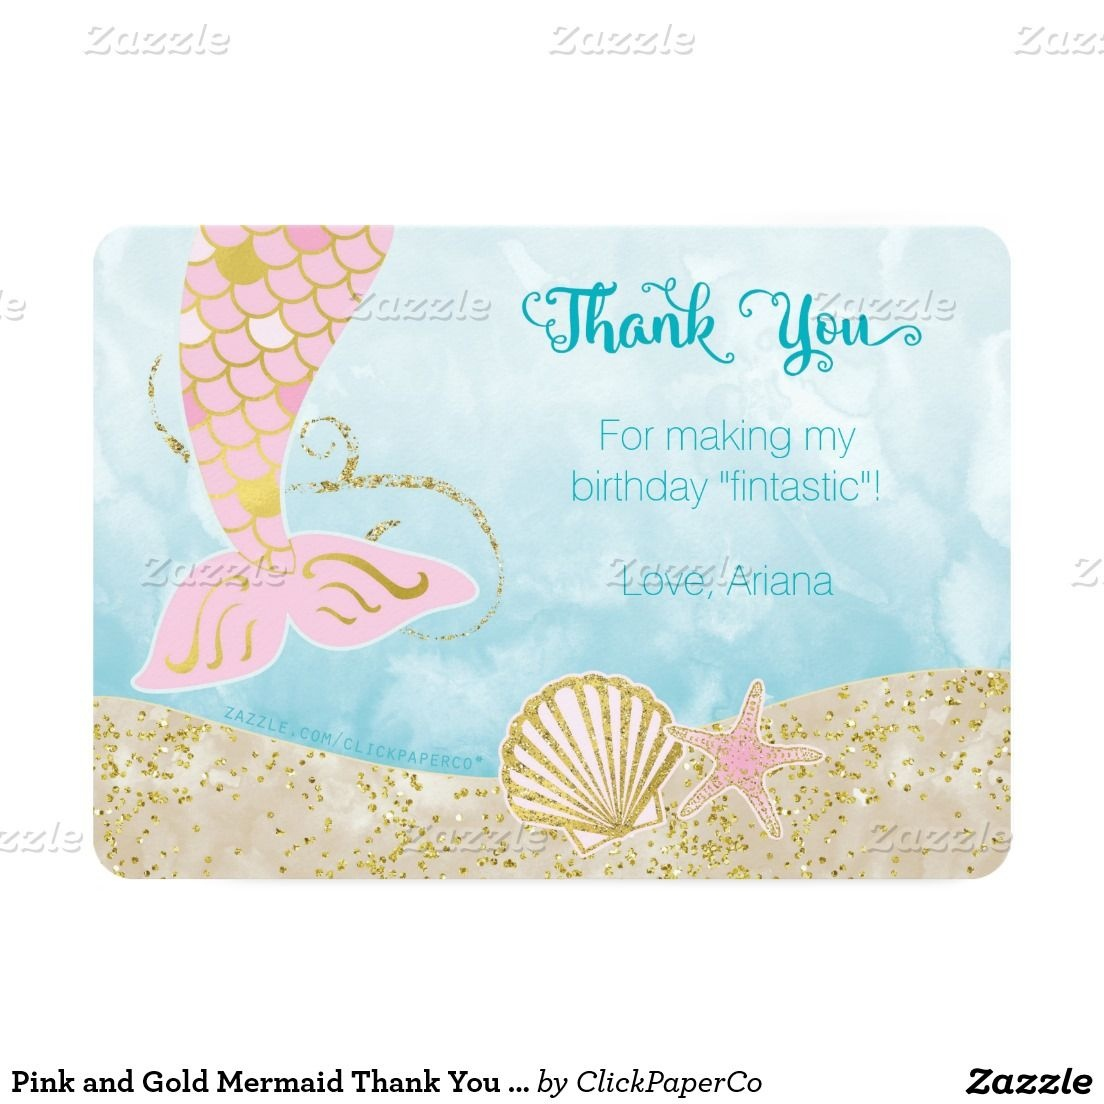 Pink And Gold Mermaid Thank You Card | Zazzle In 2019 | Mermaid - Free Printable Mermaid Thank You Cards